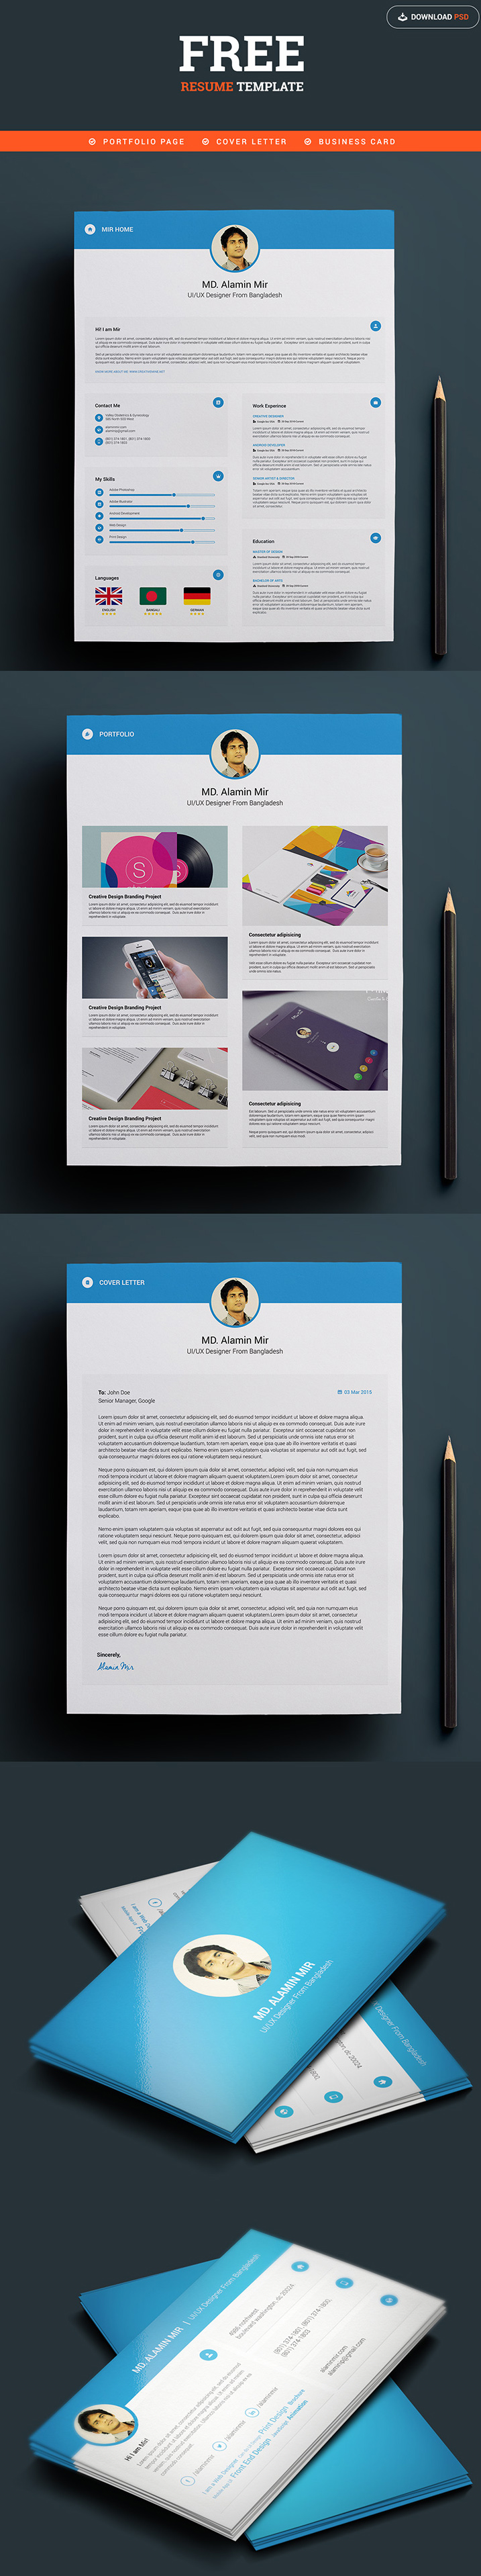 Free Designer Resume and Business Card Template